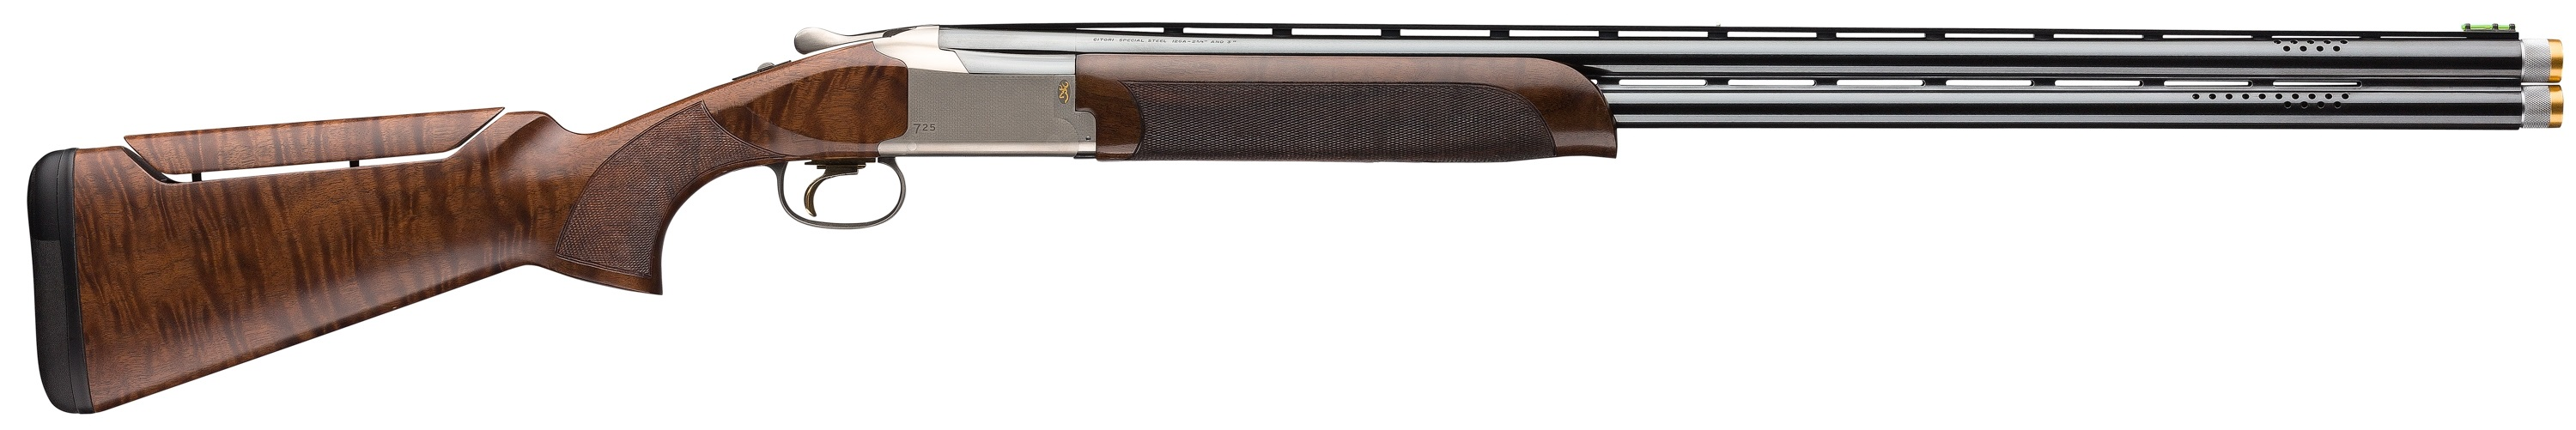 BROWNING CITORI 725 SPORTING WITH ADJUSTABLE COMB 12 GAUGE SHOTGUN